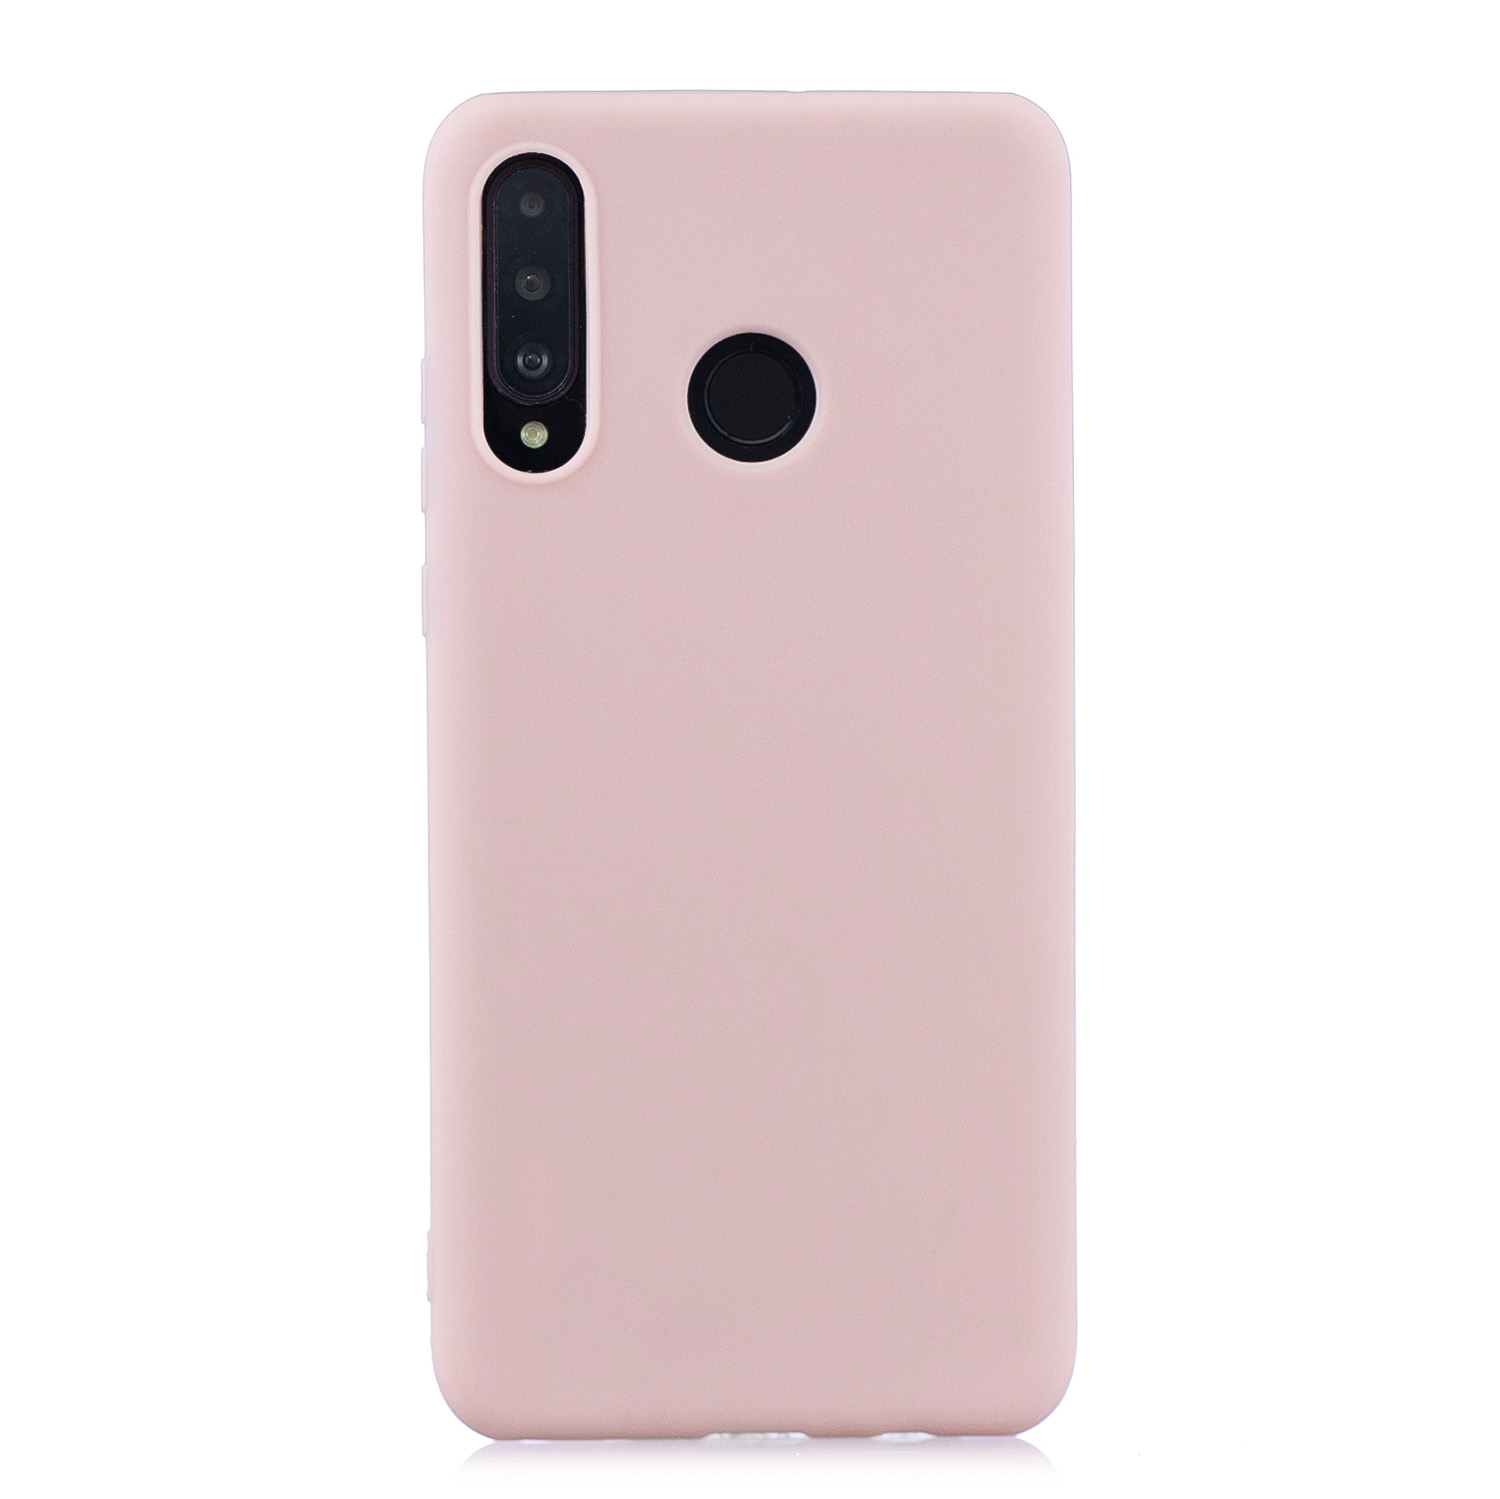 For HUAWEI P30 LITE/NOVA 4E Lovely Candy Color Matte TPU Anti-scratch Non-slip Protective Cover Back Case Light pink